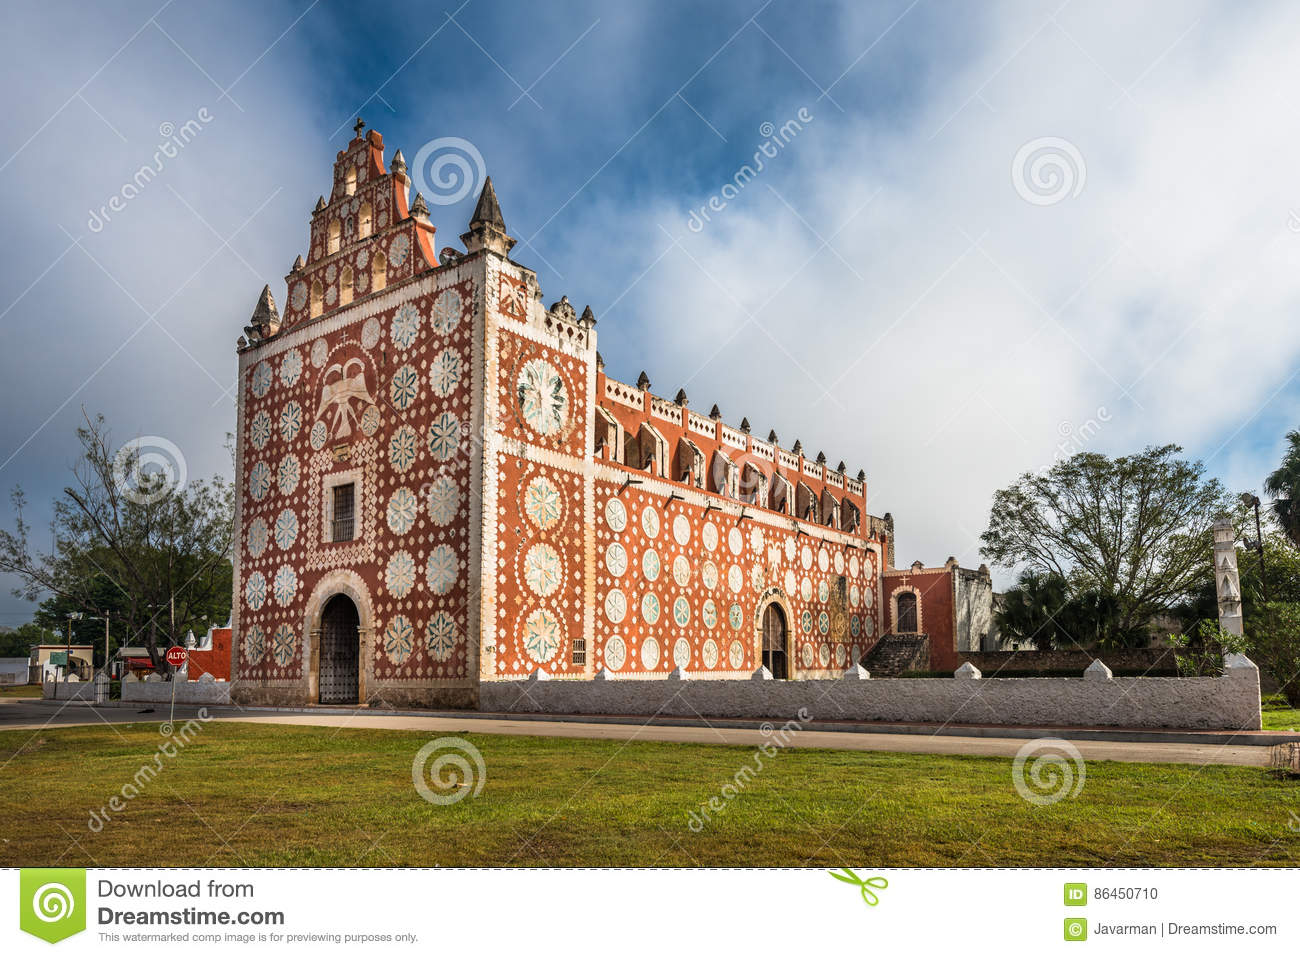 Download Uayma Church, Unique Colonial Architecture In Yucatan, Mexico Stock Photo - Image of architecture, cathedral: 86450710